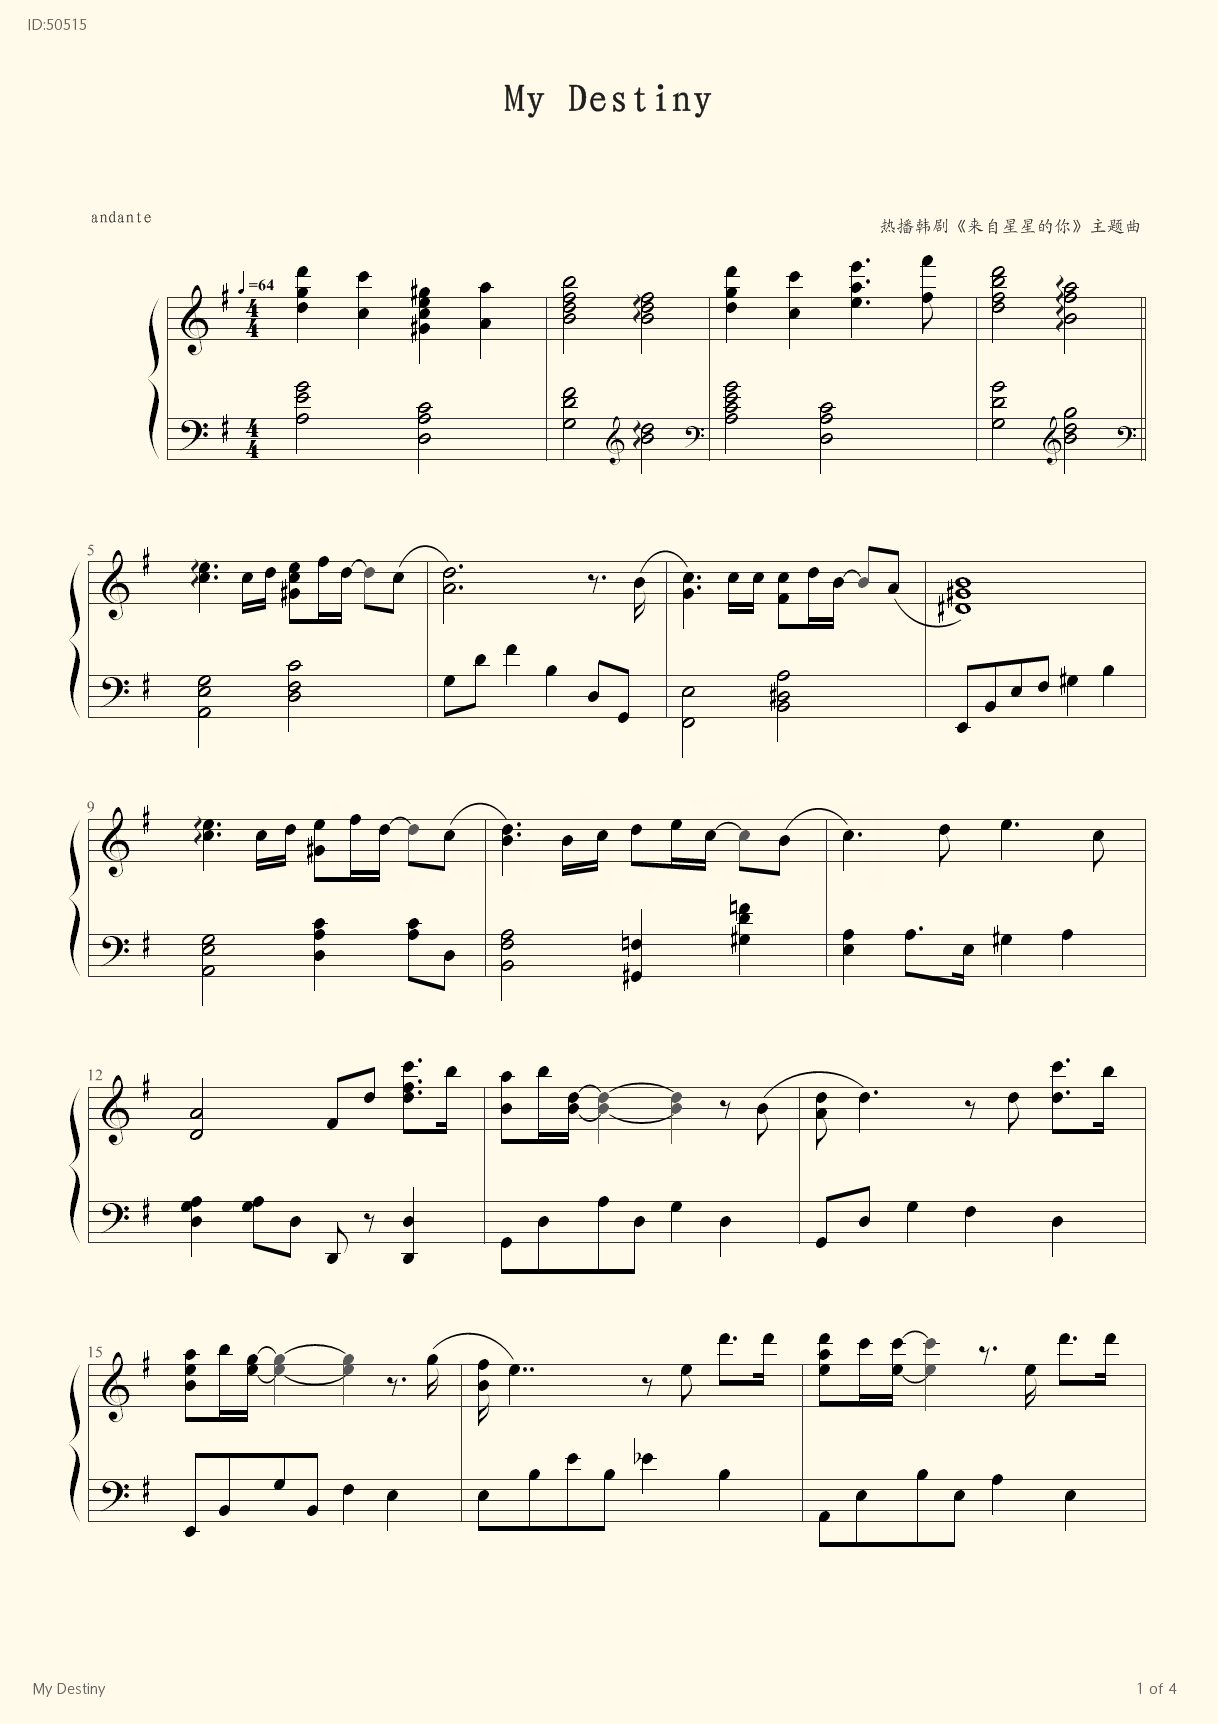 My Destiny - Lyn - first page